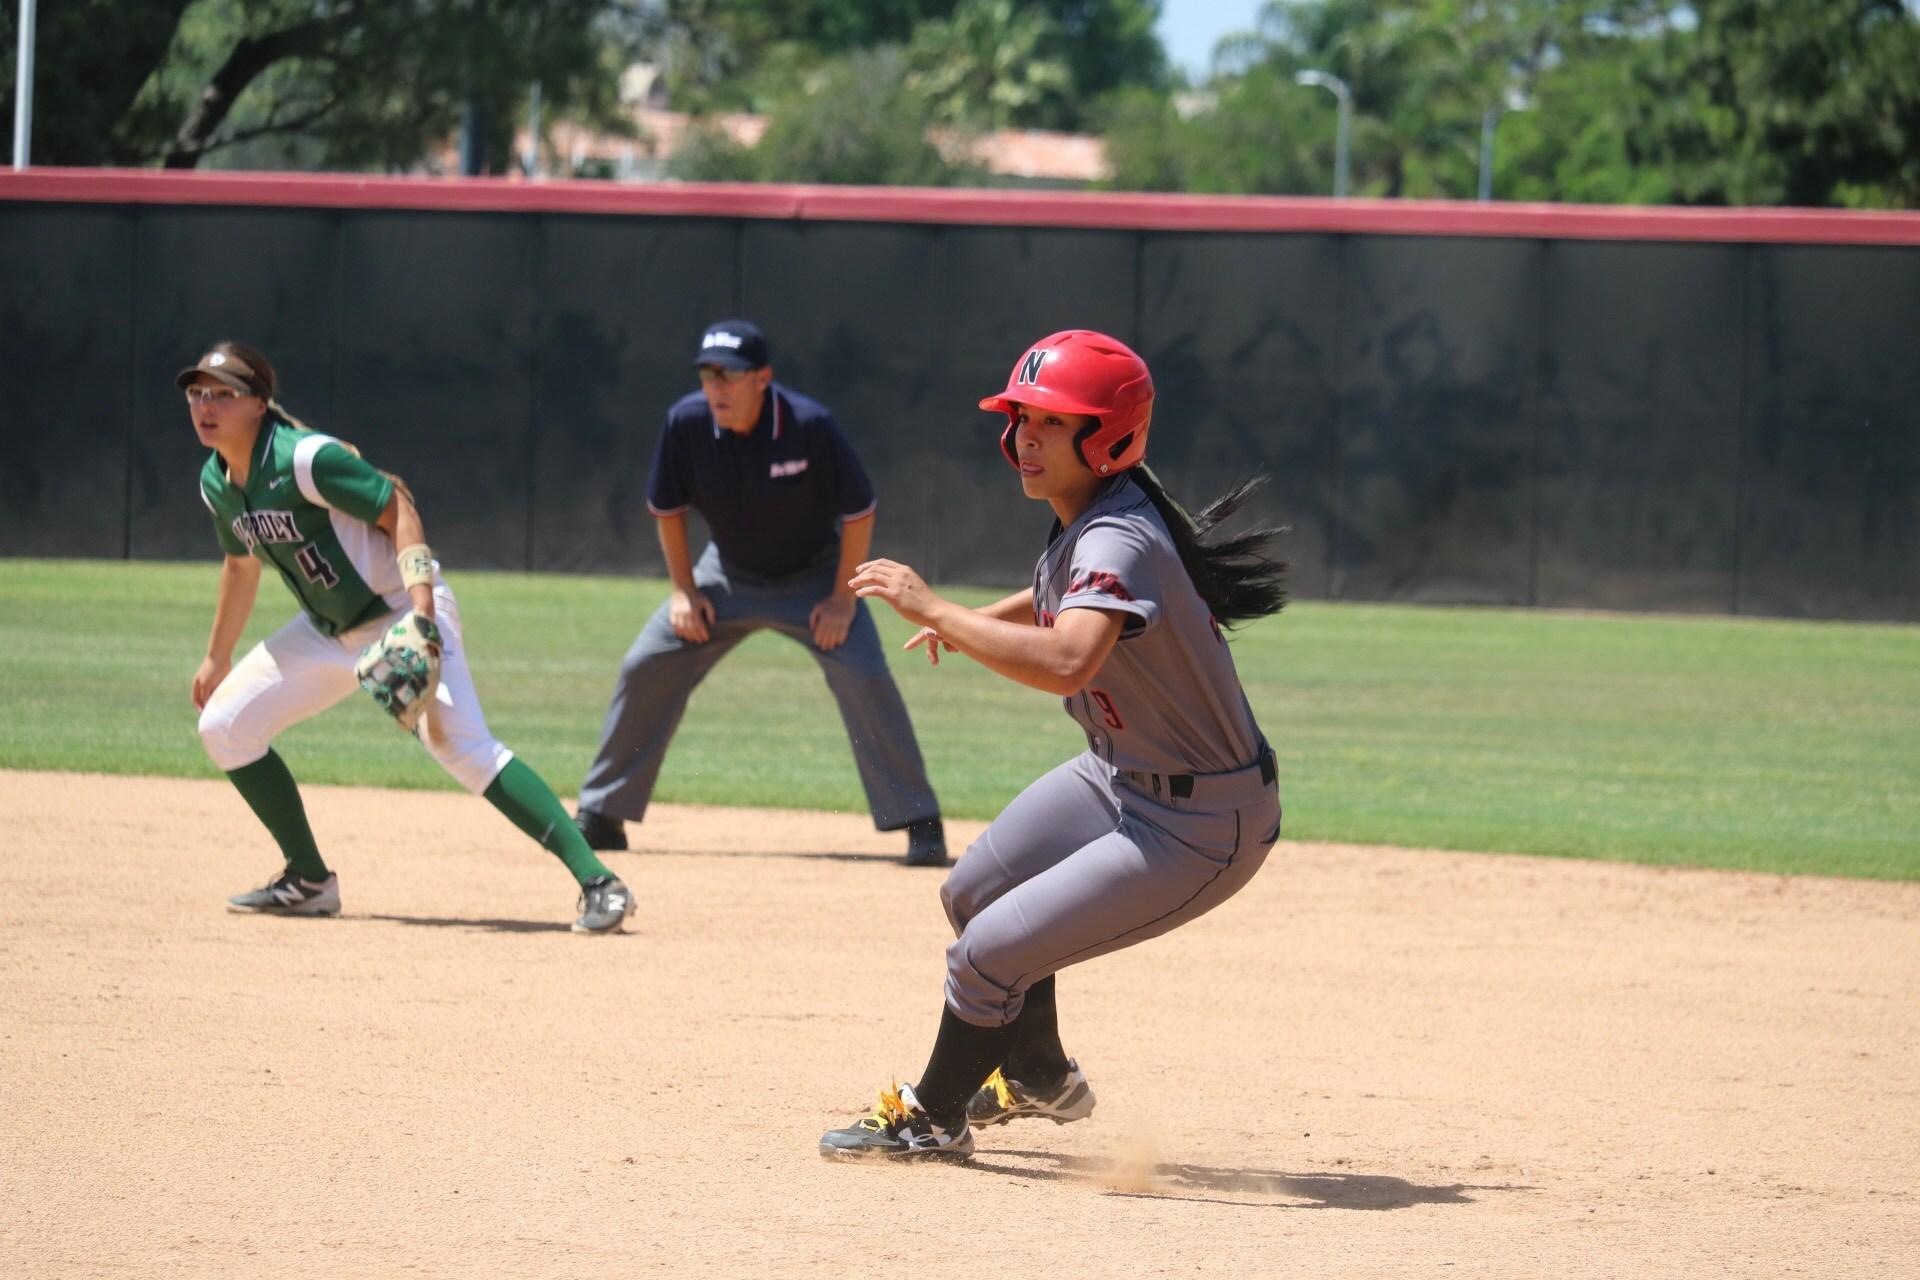 Horvath runs for second base against Cal Poly last season. Photo credit: Lauren Valencia